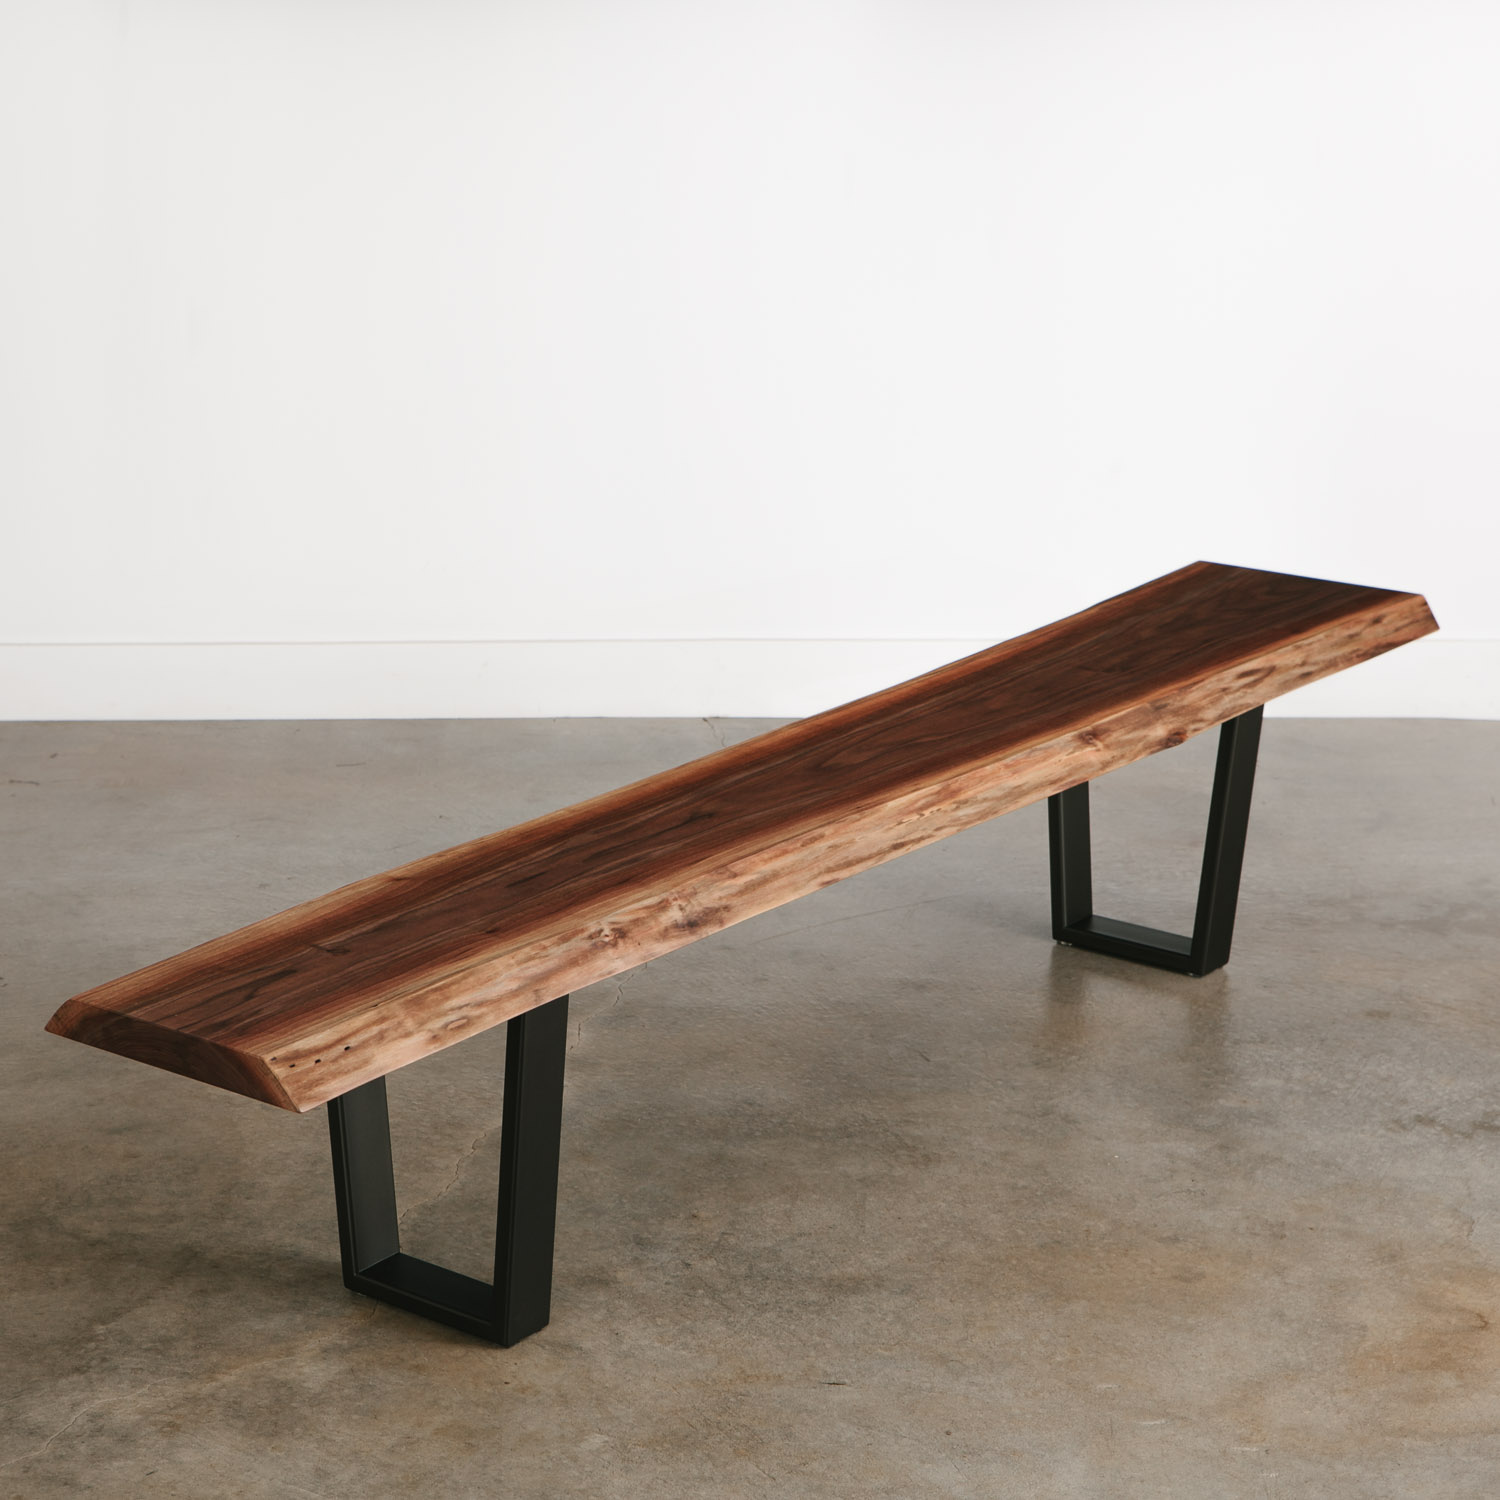 Picture of: Walnut Bench No 288 Elko Hardwoods Modern Live Edge Furniture Dining Coffee Tables Desks Benches